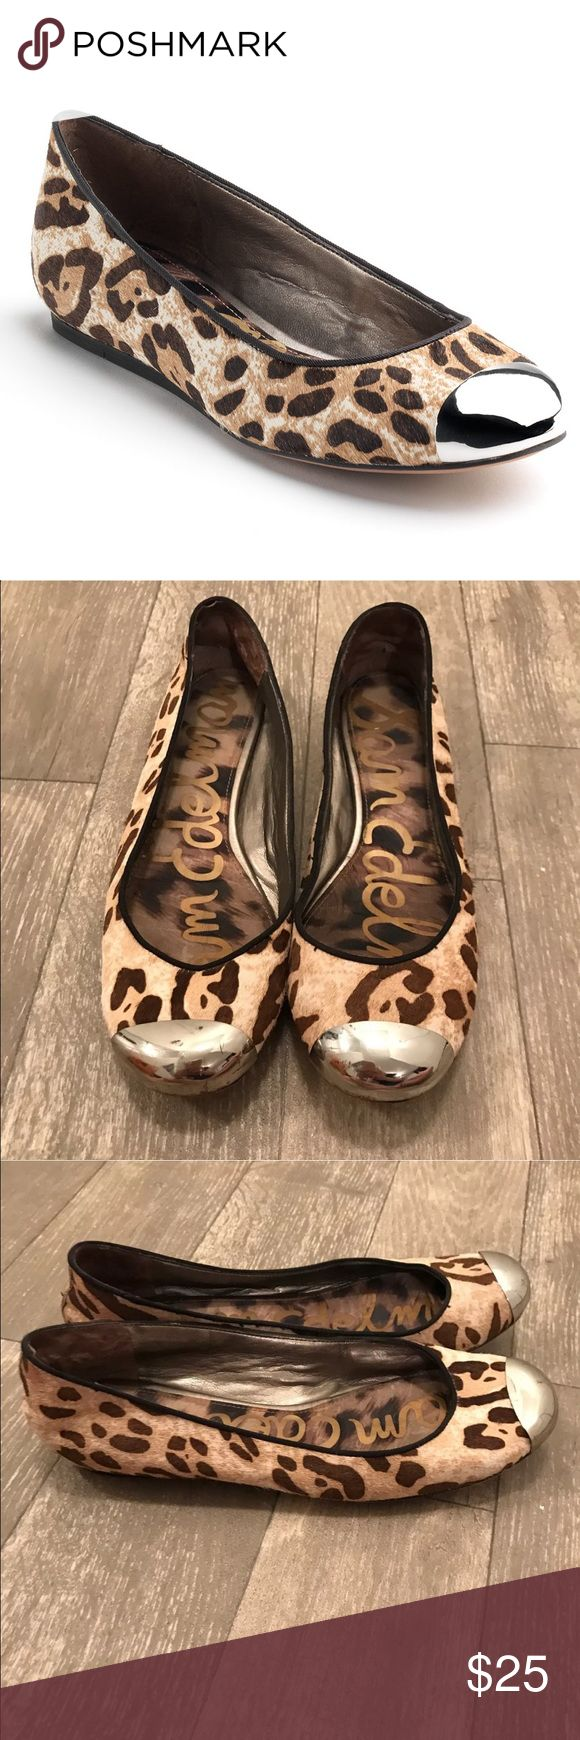 Sam Edelman Jordie Calf Hair Leopard Ballet Flat Excellent condition with slight scratching on toe. Barely noticeable! Sam Edelman Shoes Flats & Loafers